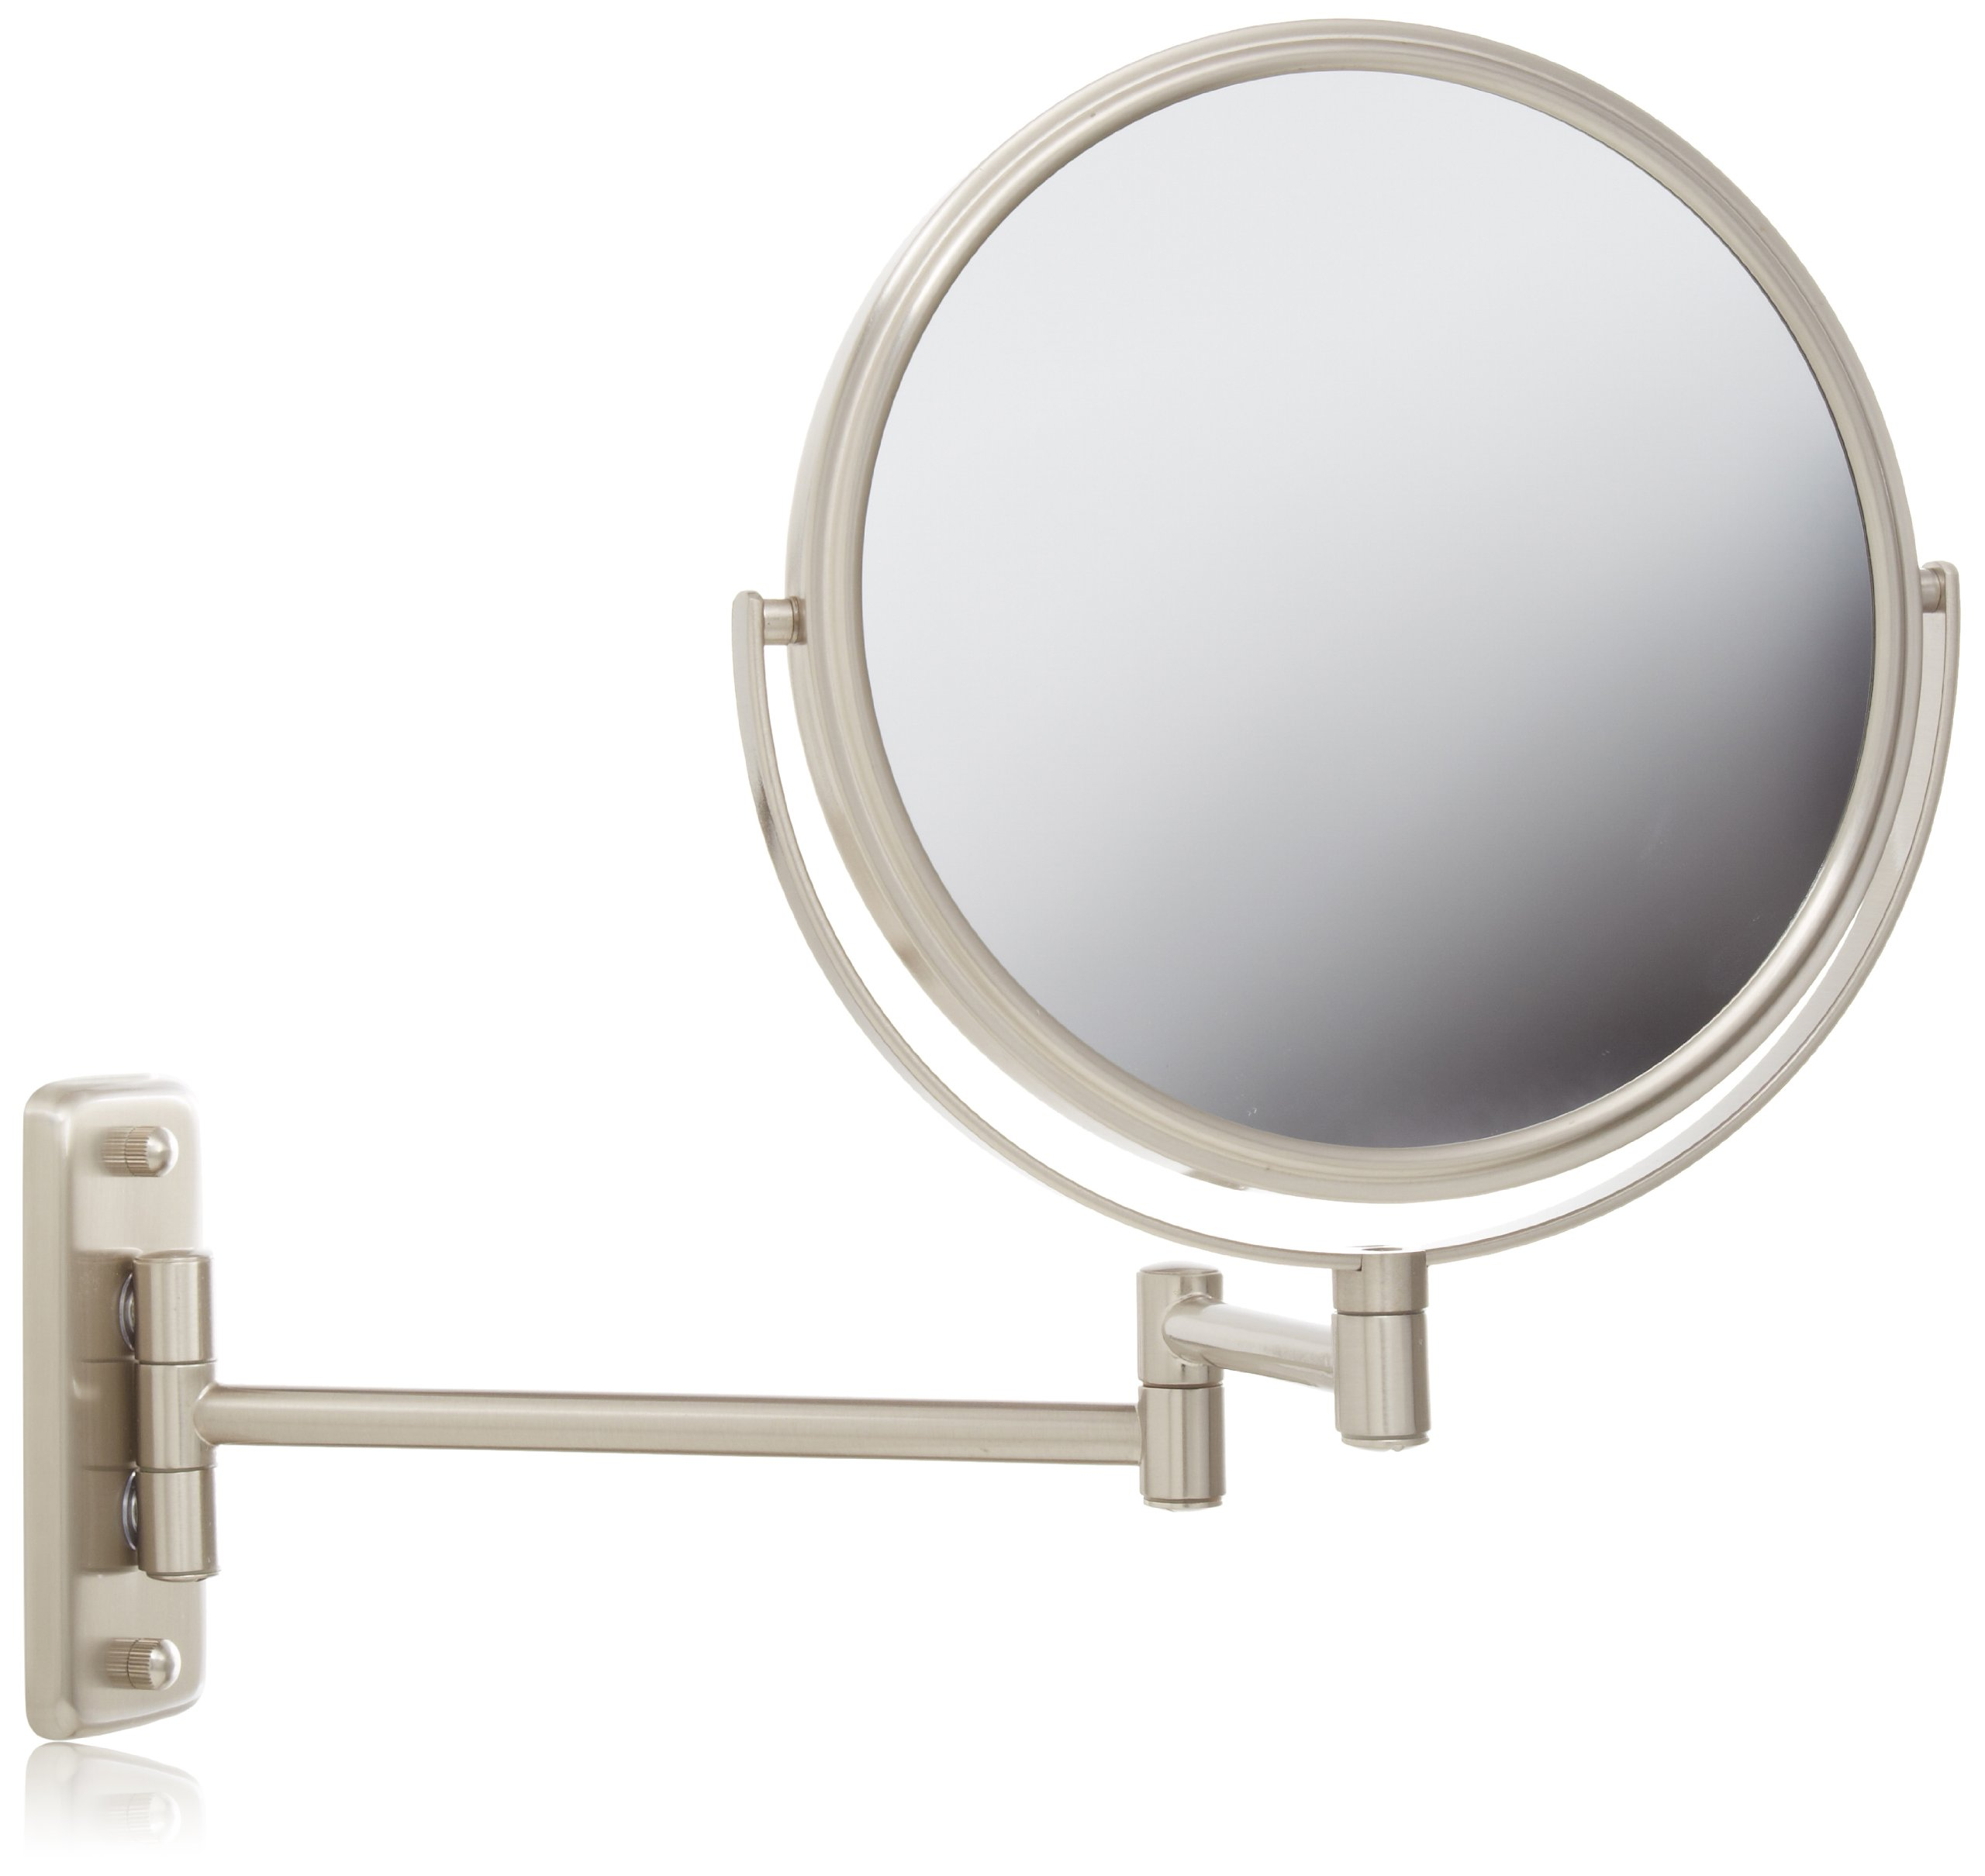 Jerdon JP7808N 8-Inch Two-Sided Swivel Wall Mount Mirror with 8x Magnification, 13.5-Inch Extension, Nickel Finish by Jerdon